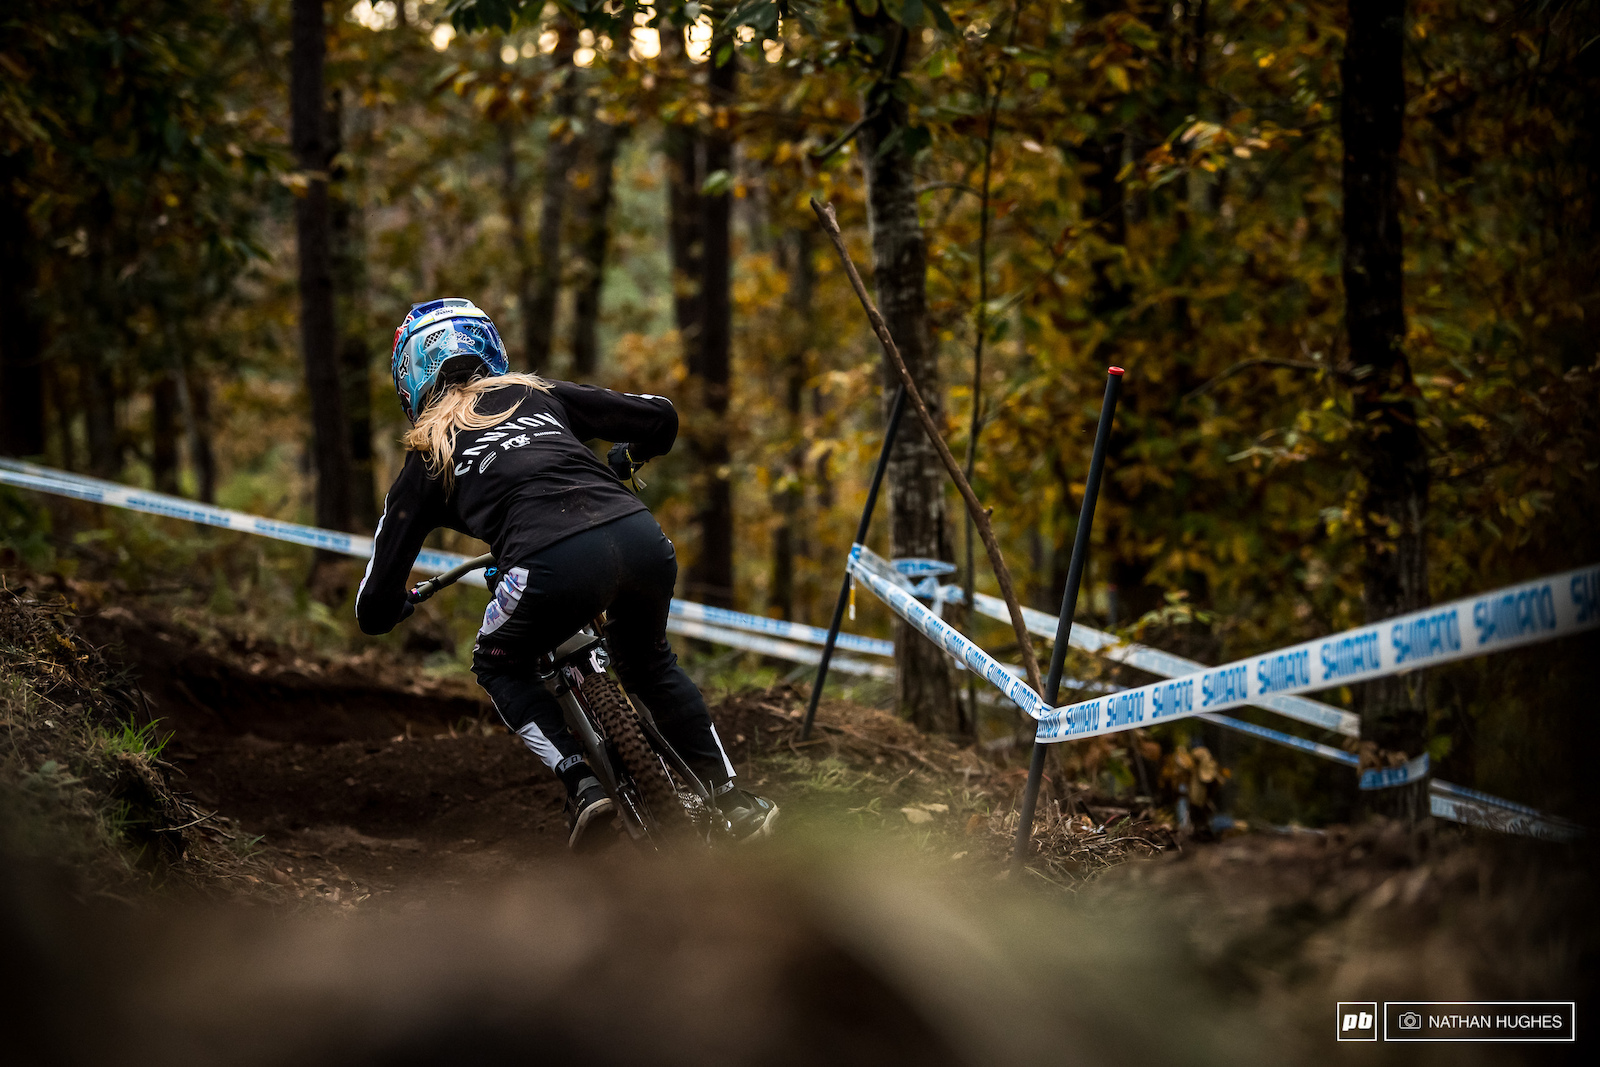 Tahnee Seagrave was one of the last riders on the hill today taking her time to figure out the secrets of the steeps.